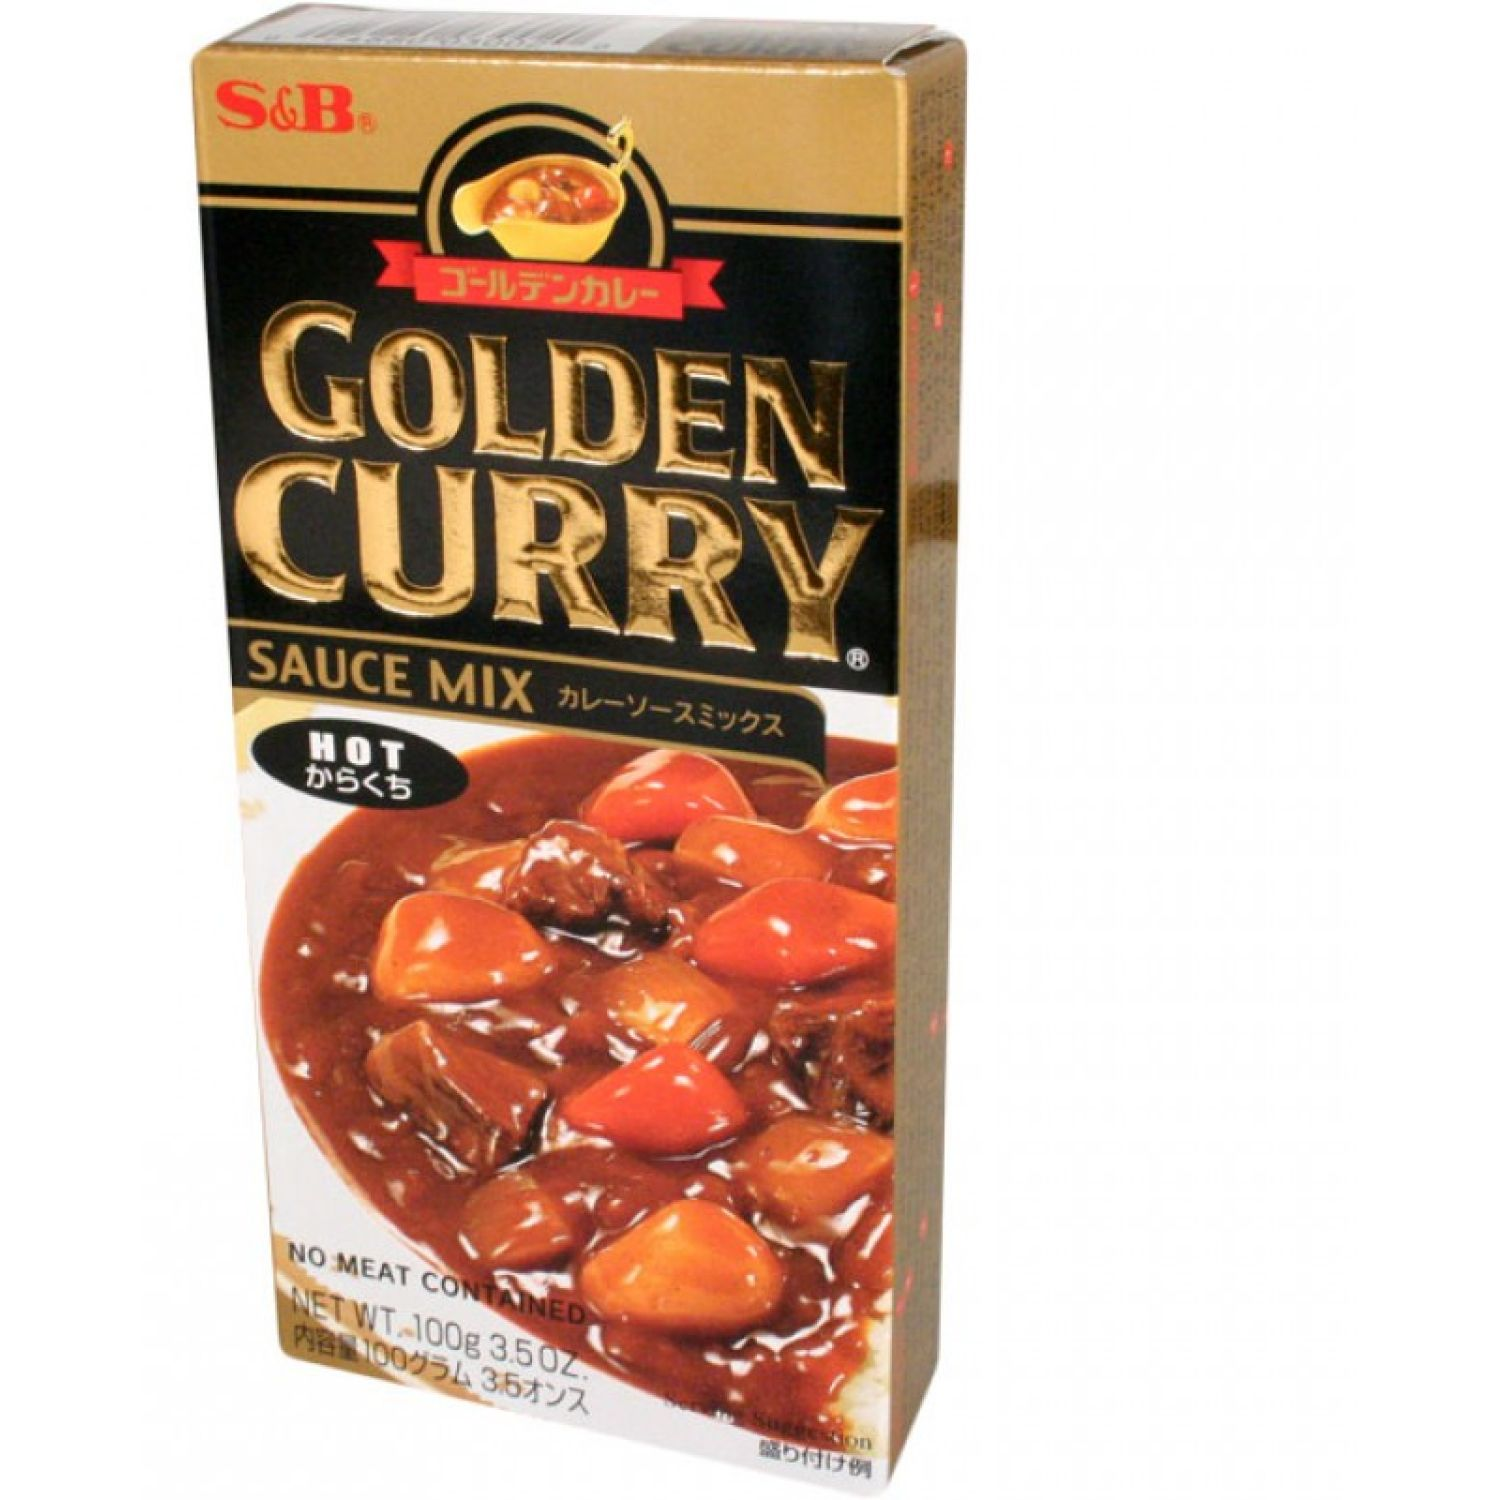 S&B S&b Golden Curry Hot 3.25 Oz. SIN COLOR Salsa de curry